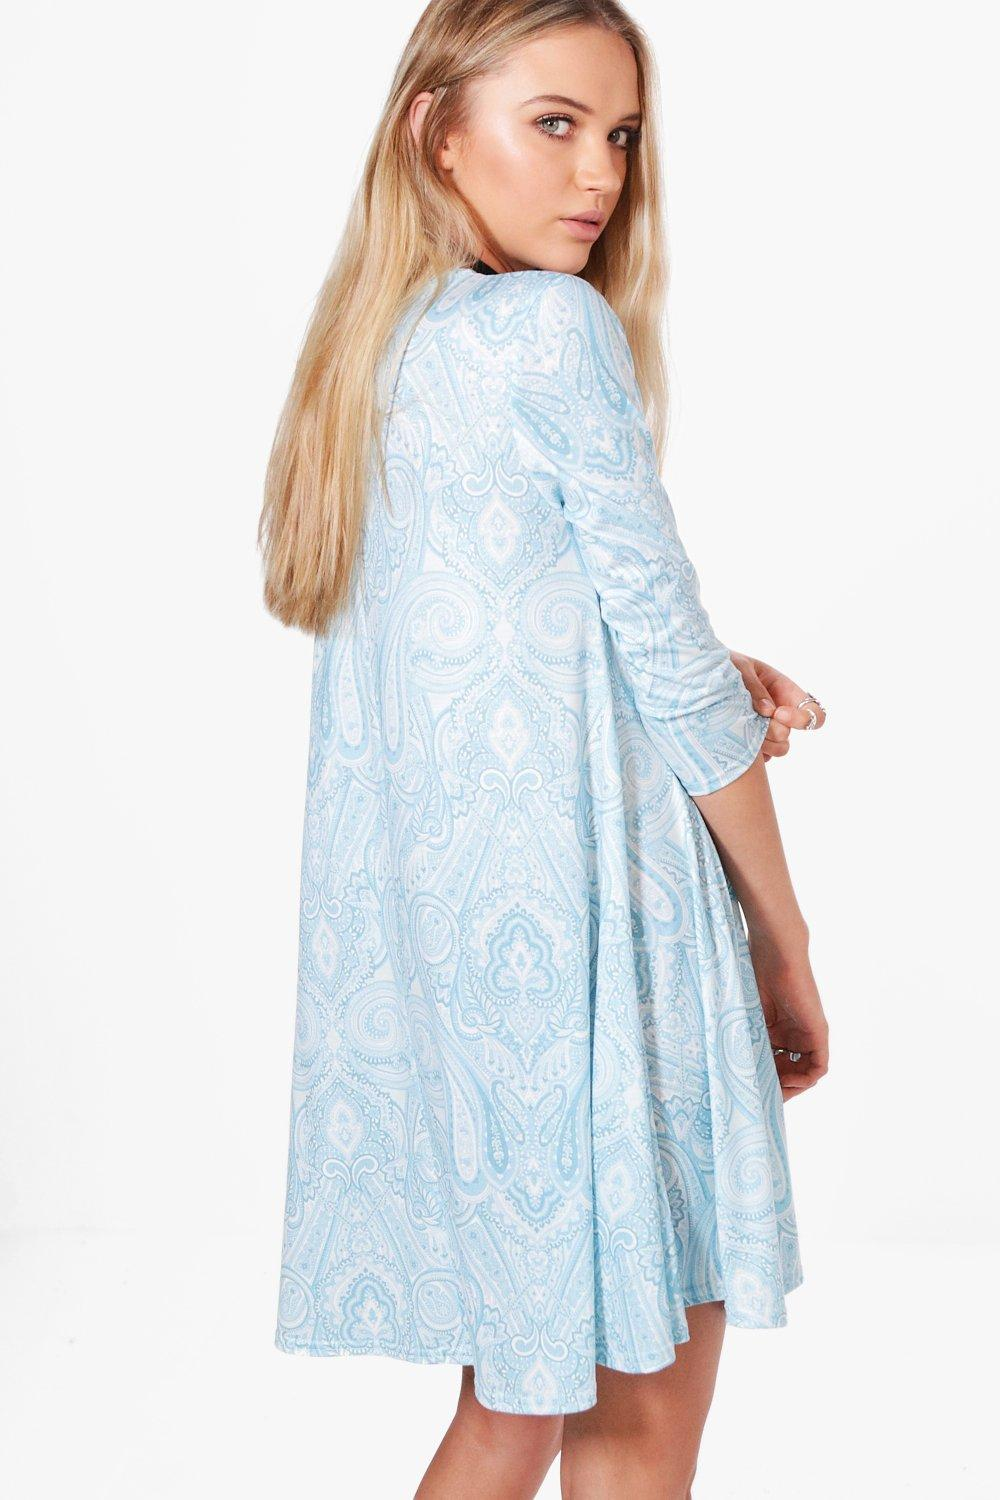 Boohoo-Coral-Paisley-3-4-Sleeve-Swing-Dress-pour-Femme